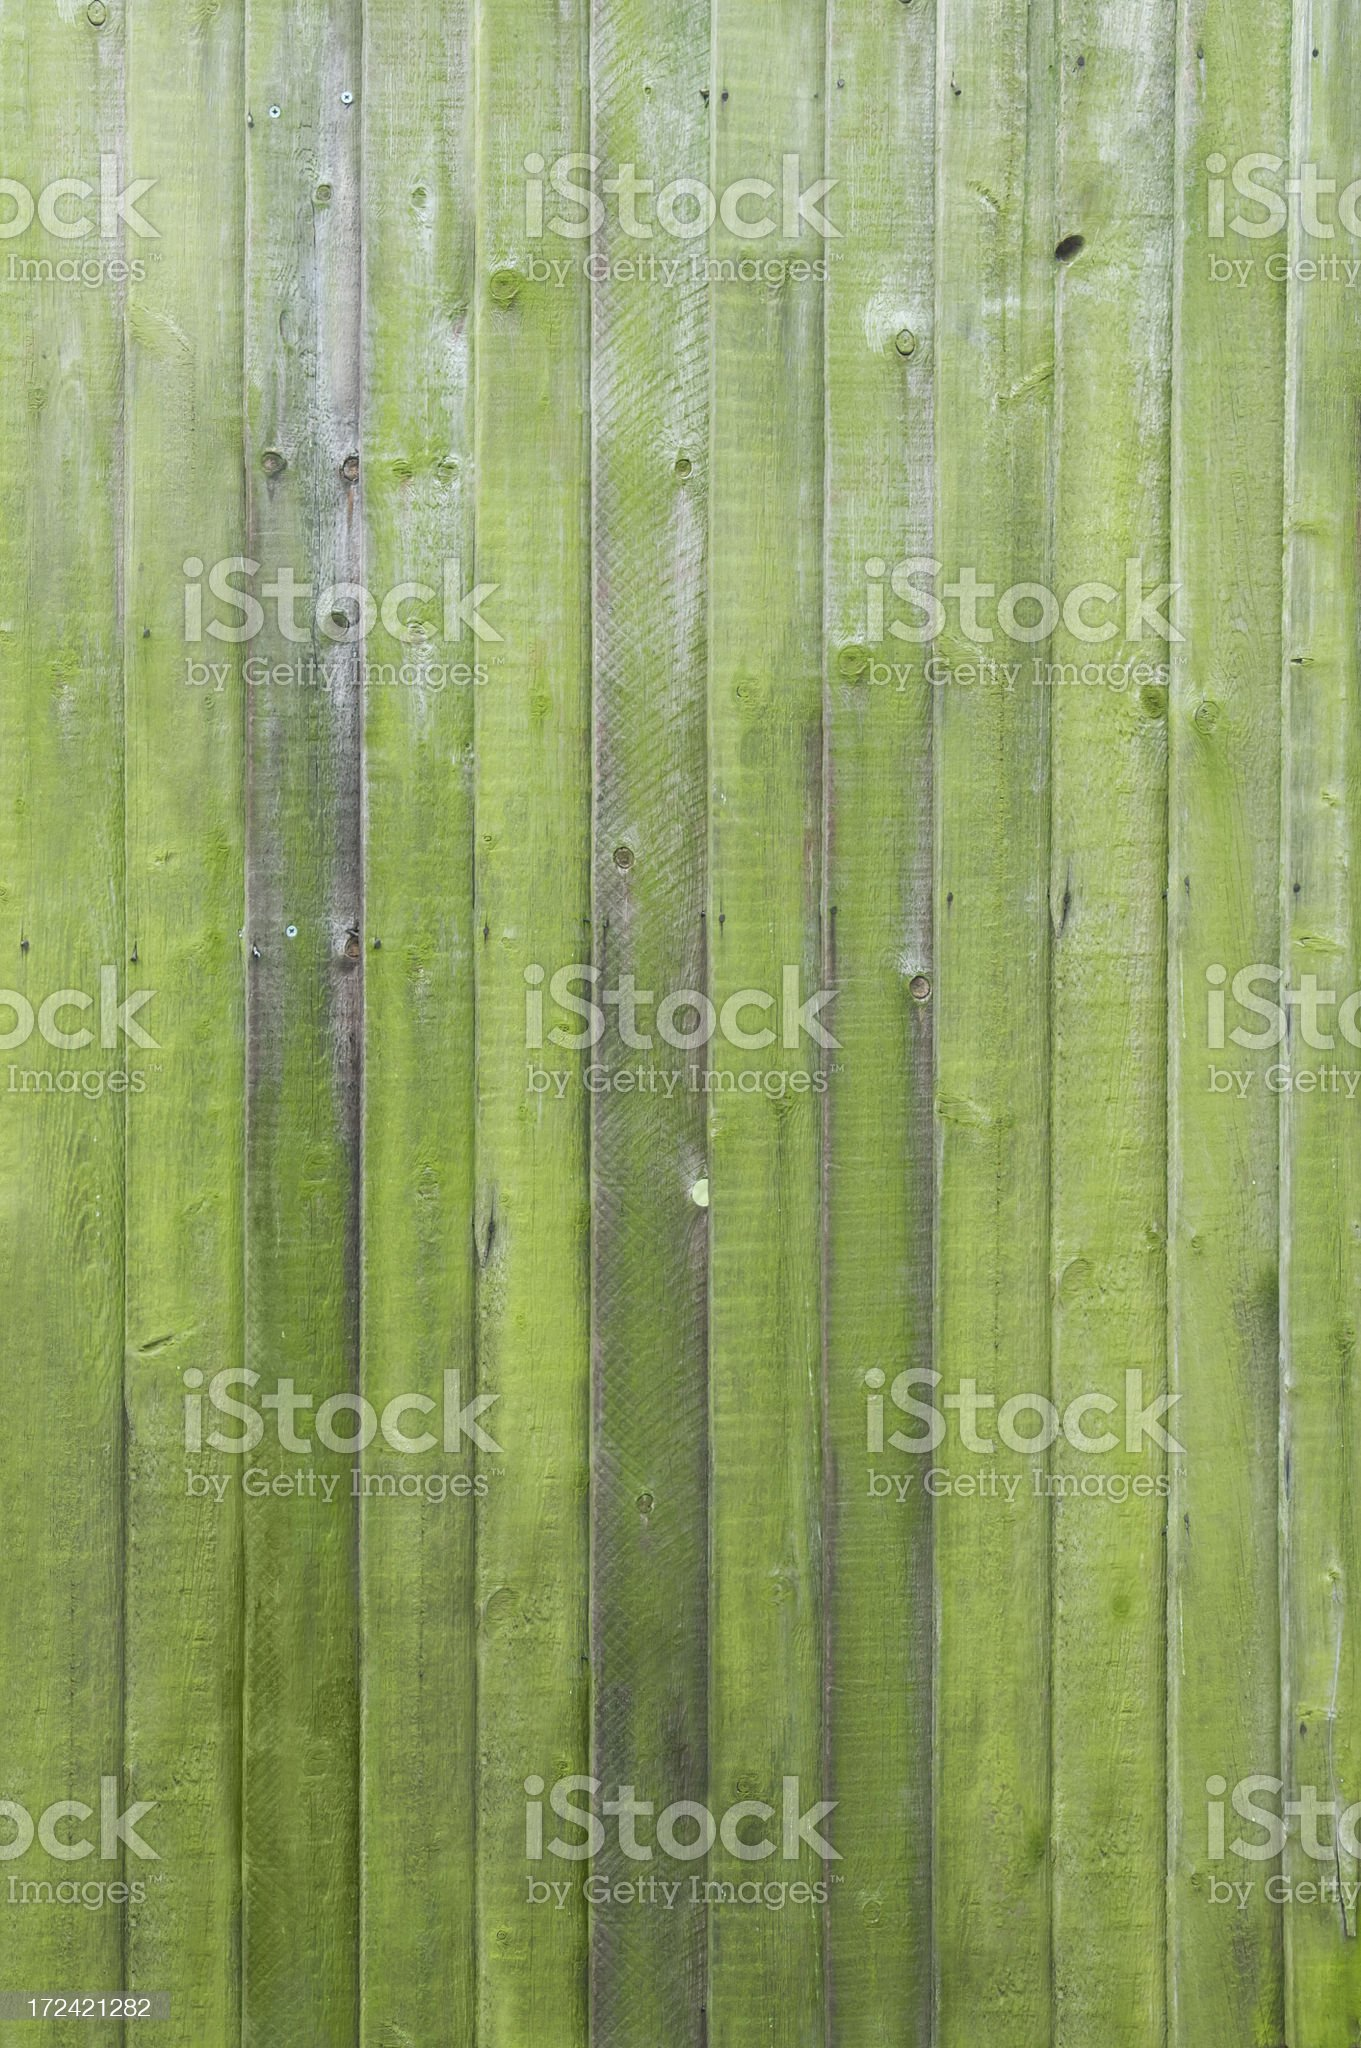 Natural wooden background - fence royalty-free stock photo